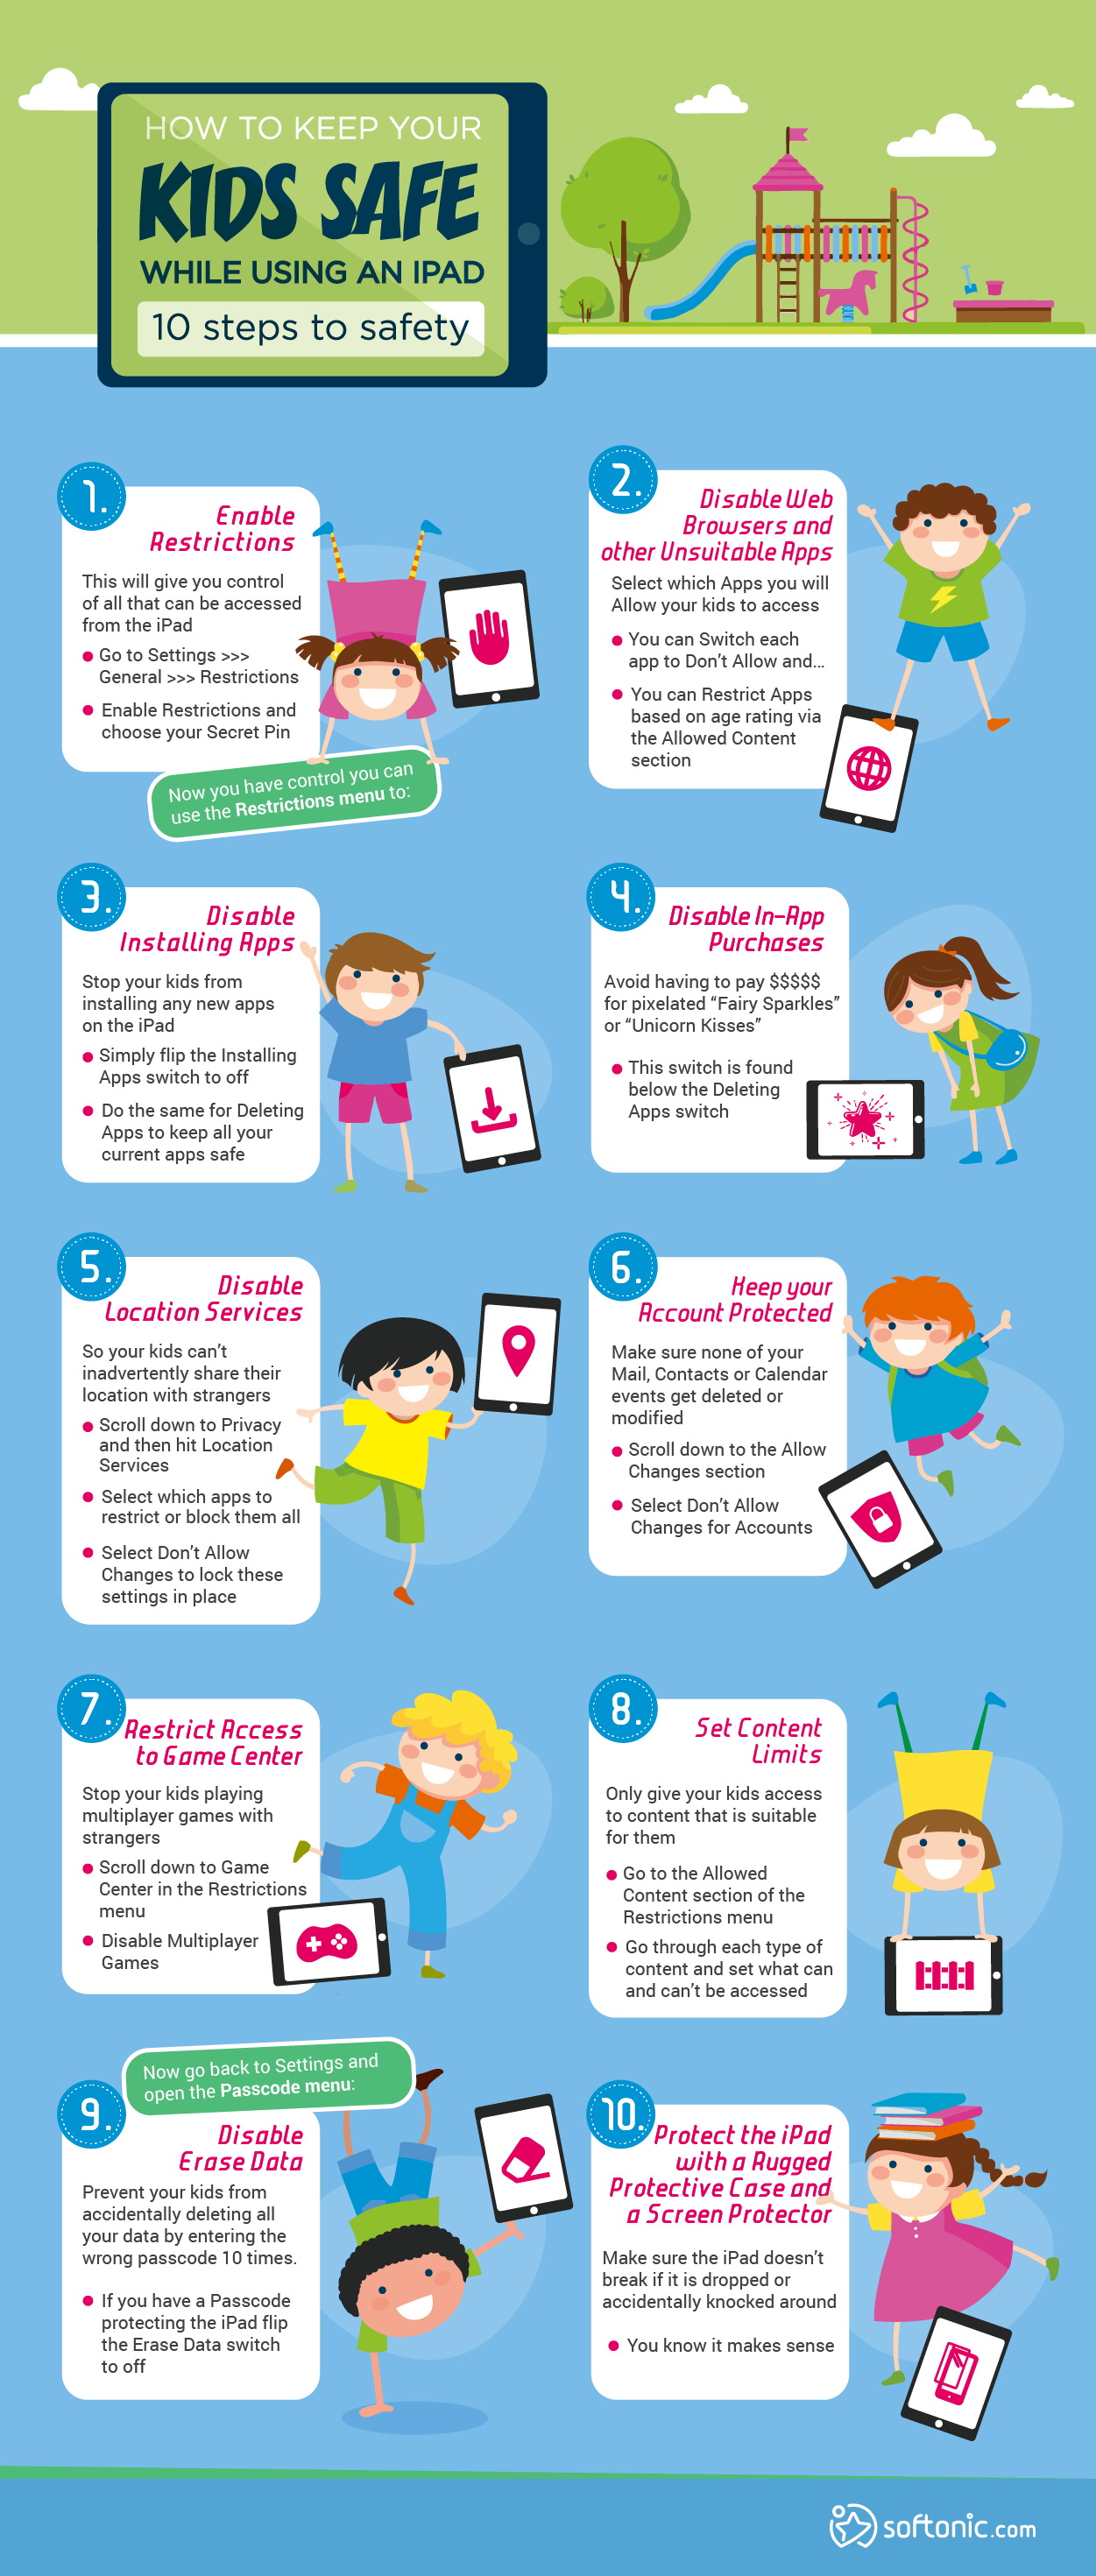 How to keep your kids safe while they're using an ipad